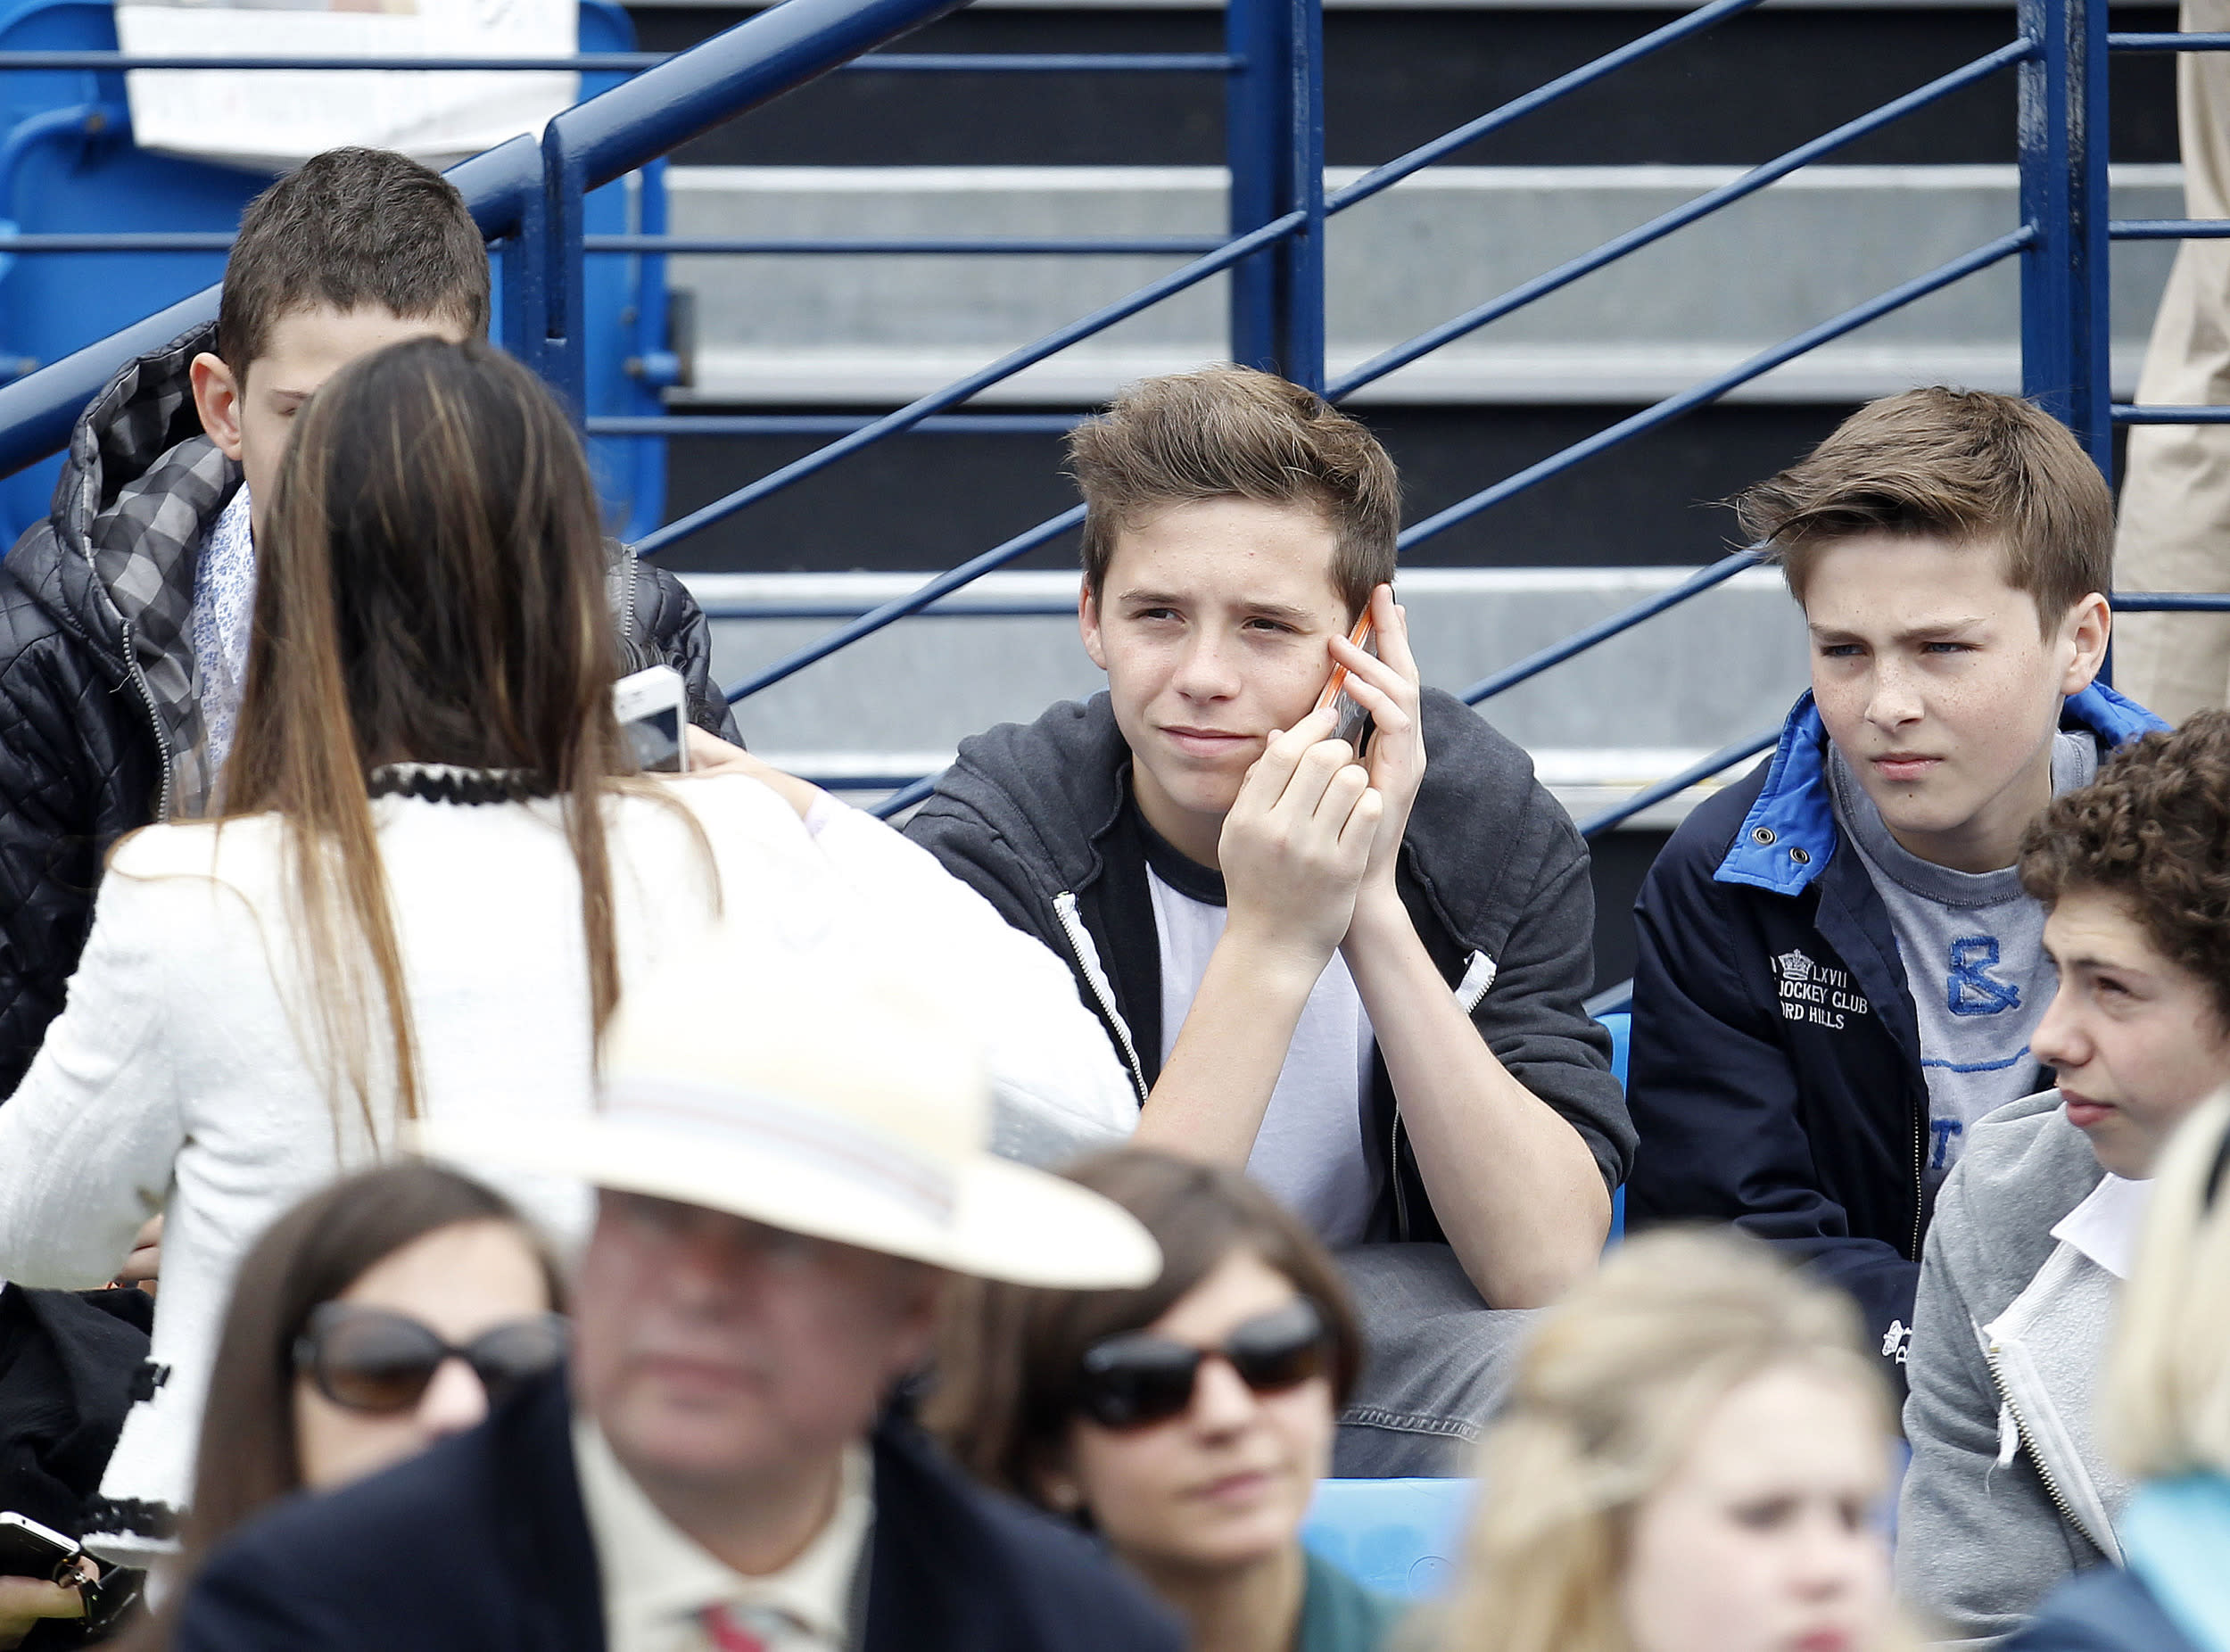 Tennis - AEGON Championships - Queens Club, London - 16/6/13  Men's Singles - Son of former footballer David Beckham (not pictured), Brooklyn Beckham (C) watches from the stands before the final  Mandatory Credit: Action Images / Jed Leicester  Livepic